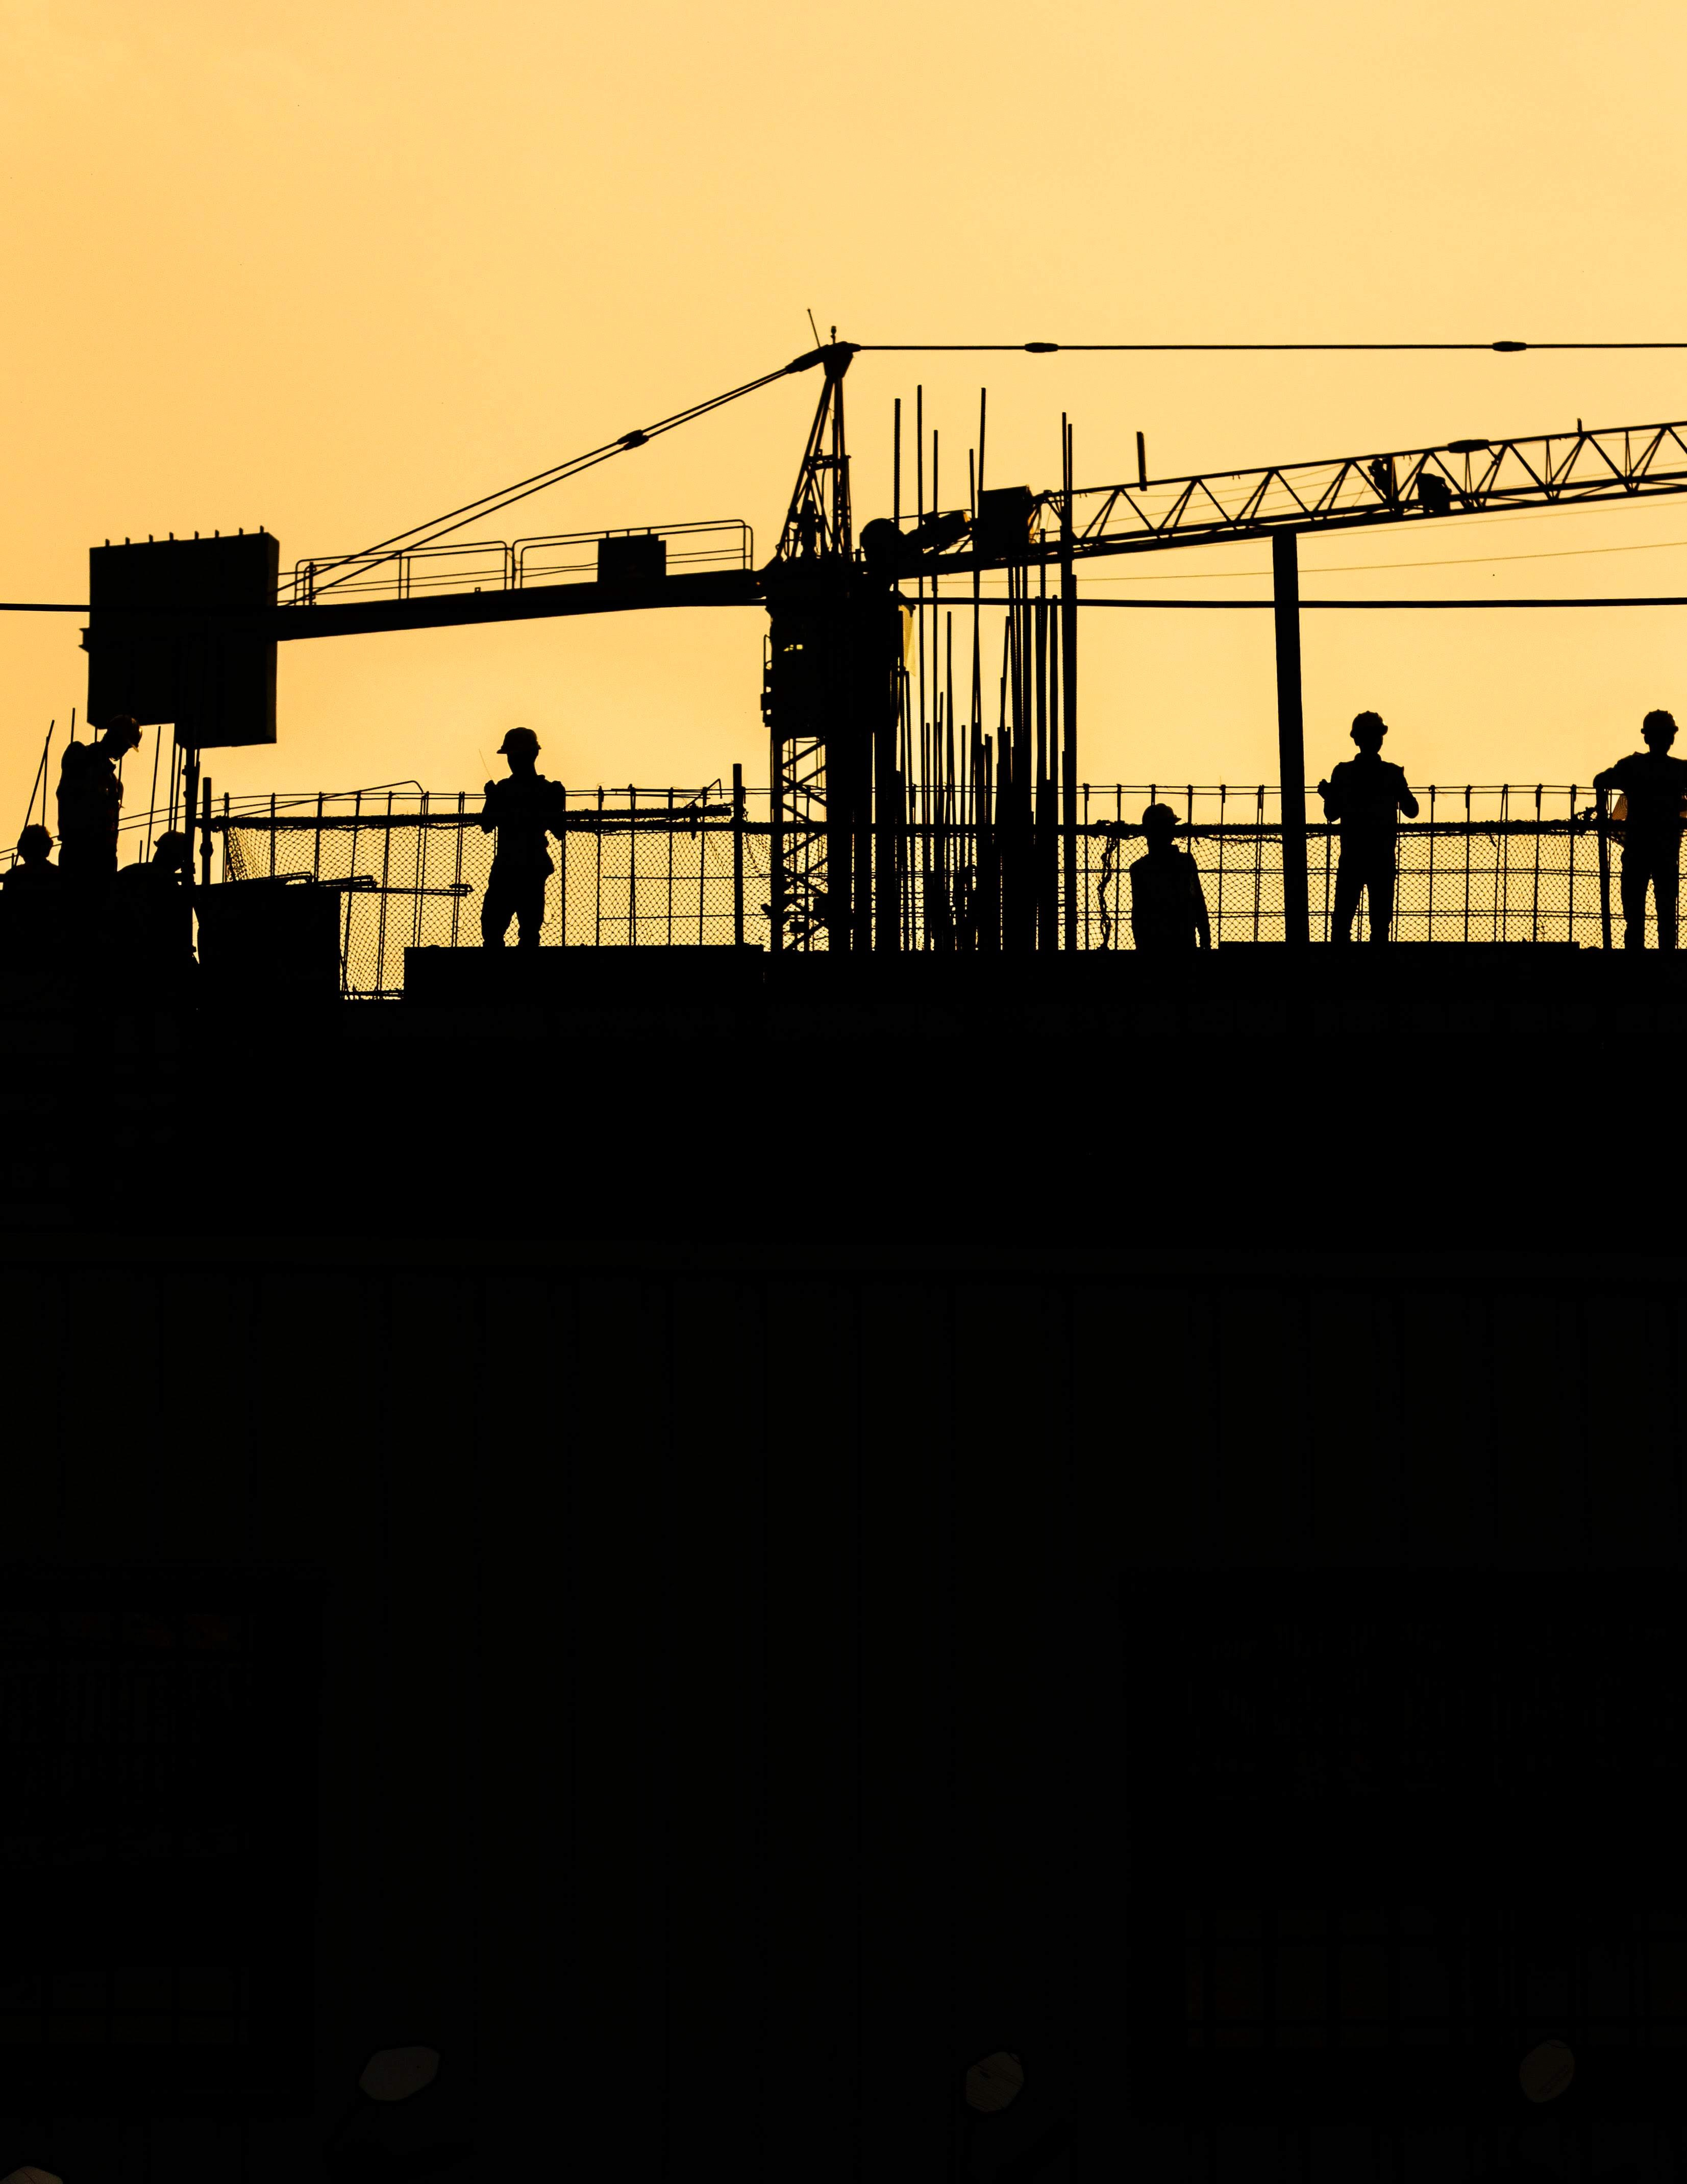 Sihouette of people standing at a construction site with a crane in the background.